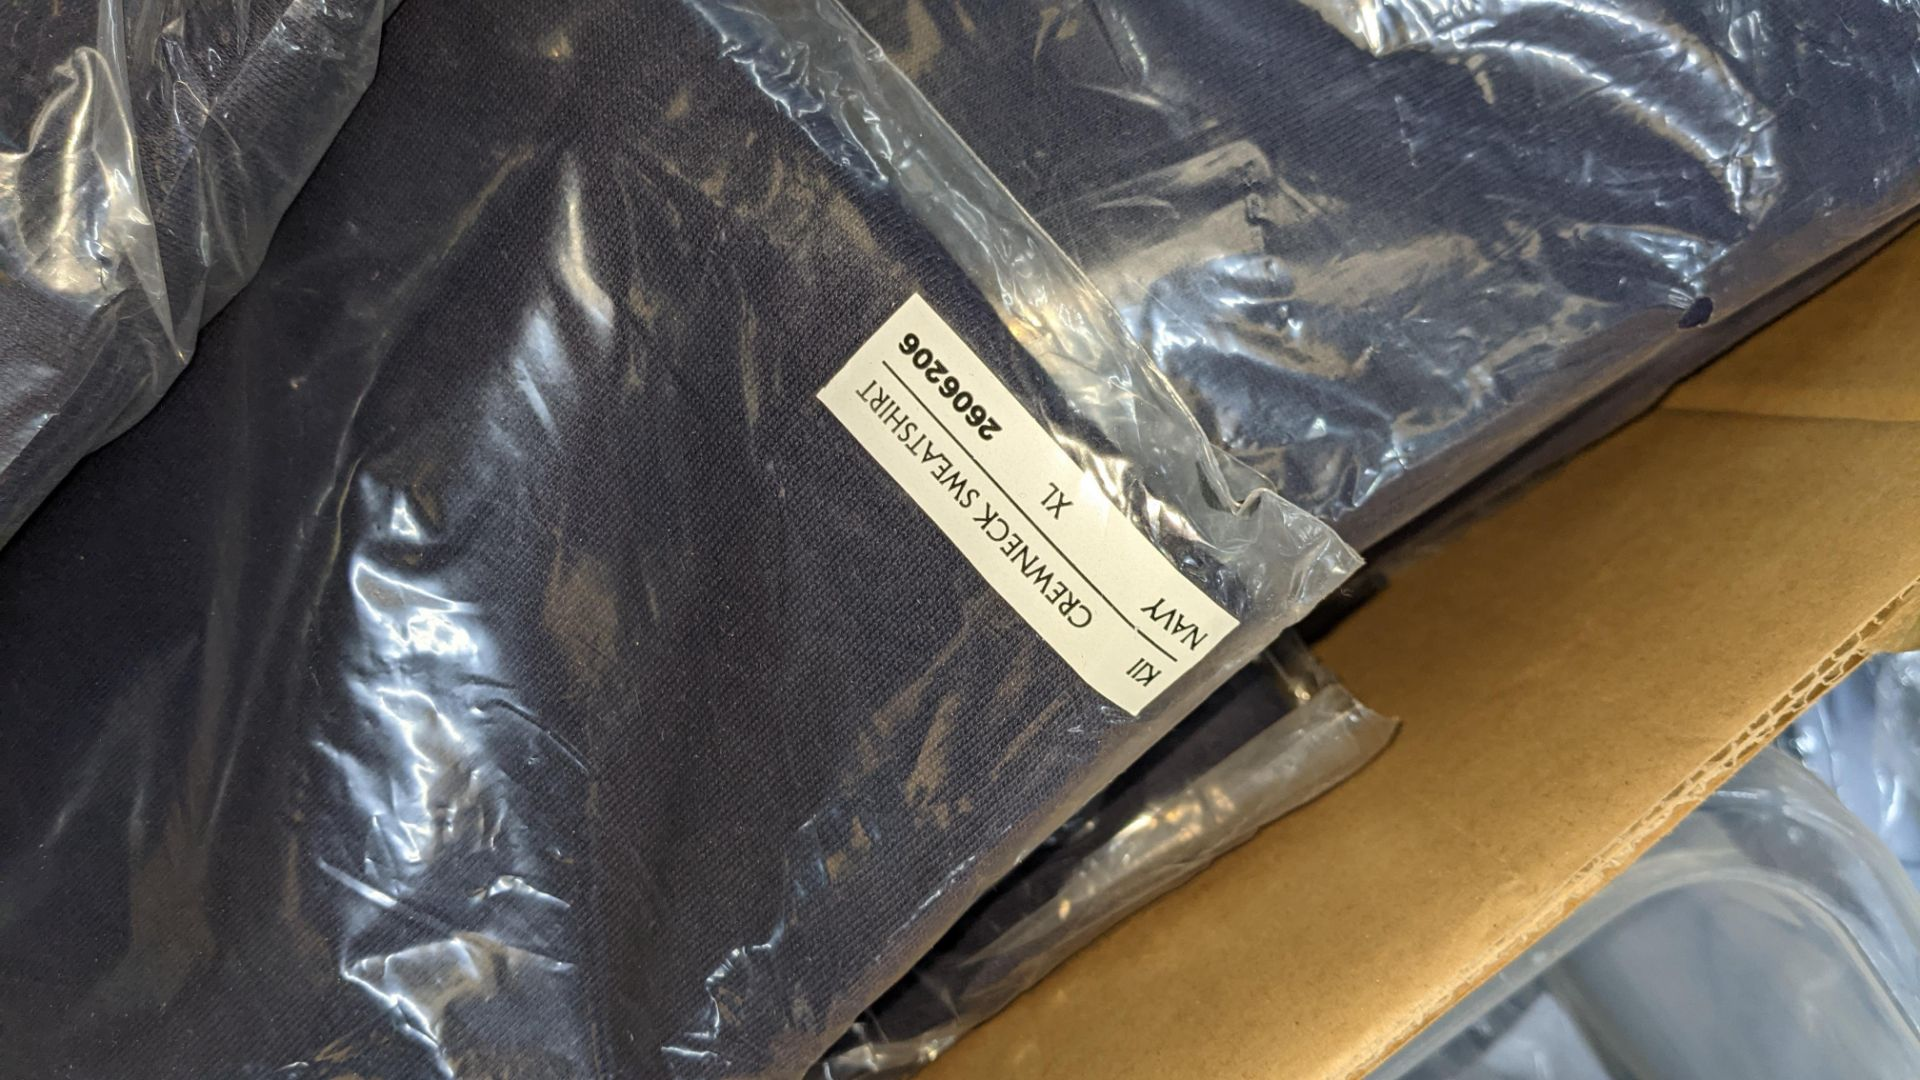 Approx 27 off blue sweatshirts - 1 large box - Image 5 of 5